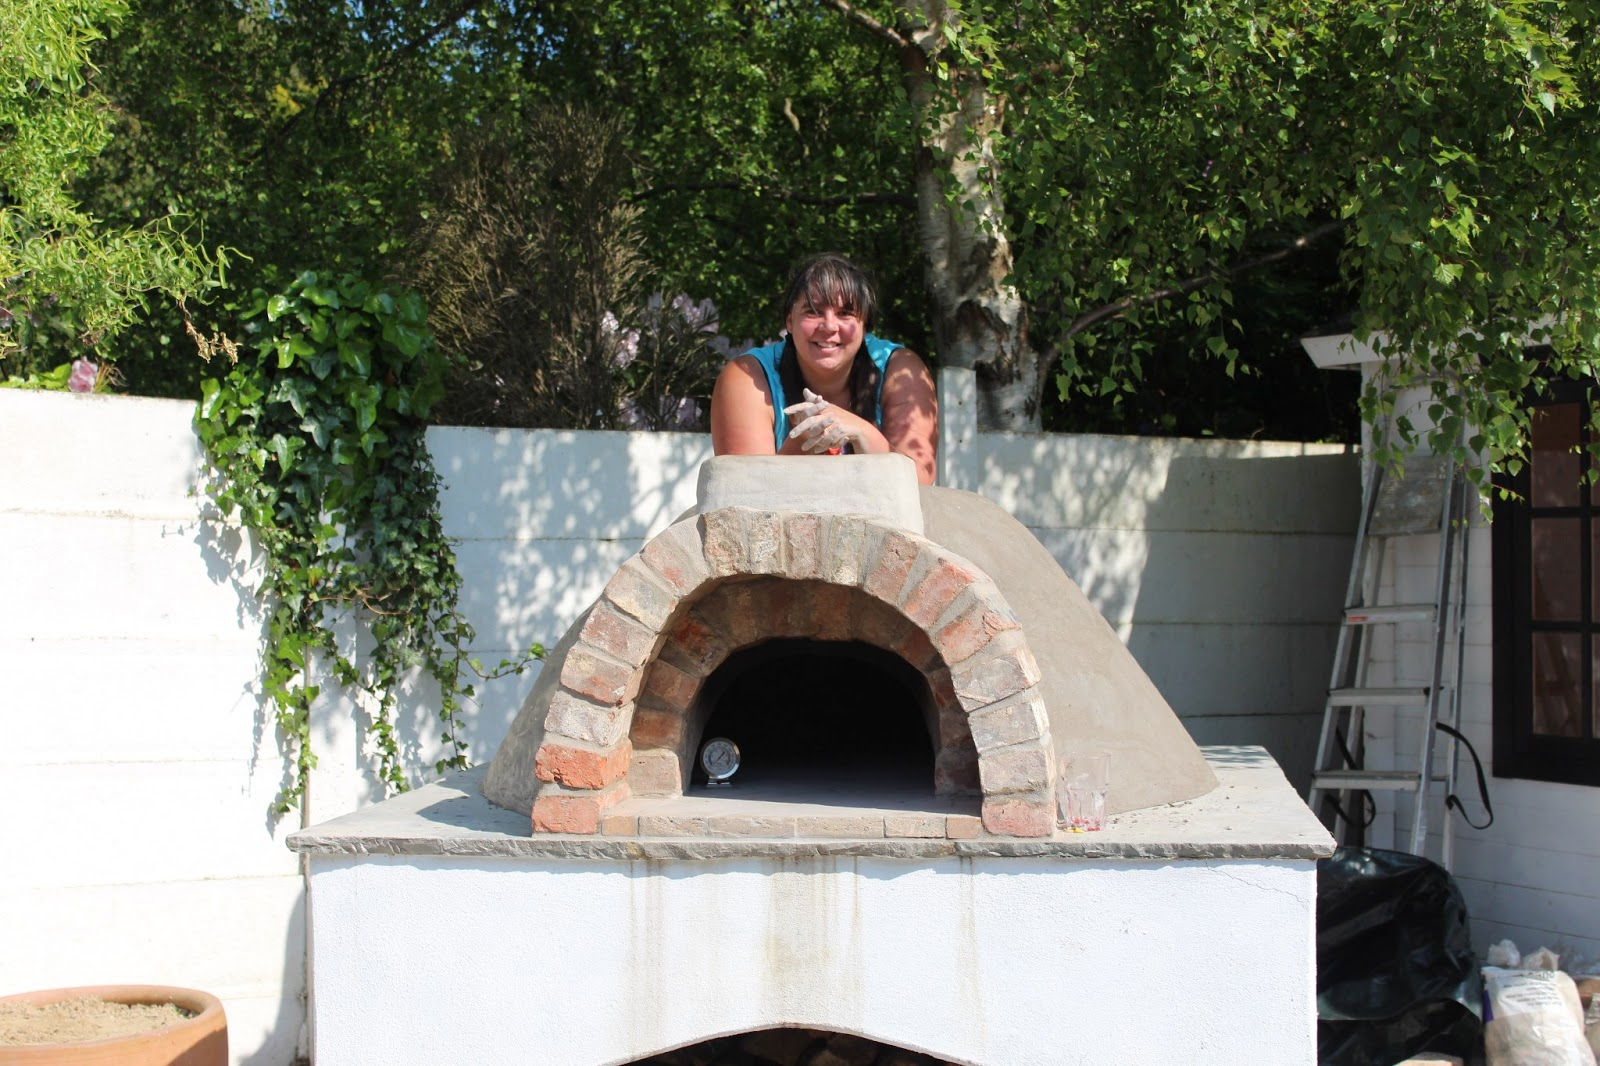 CLAY OVEN BUILDING YOUR WOOD FIRED PIZZA OVEN